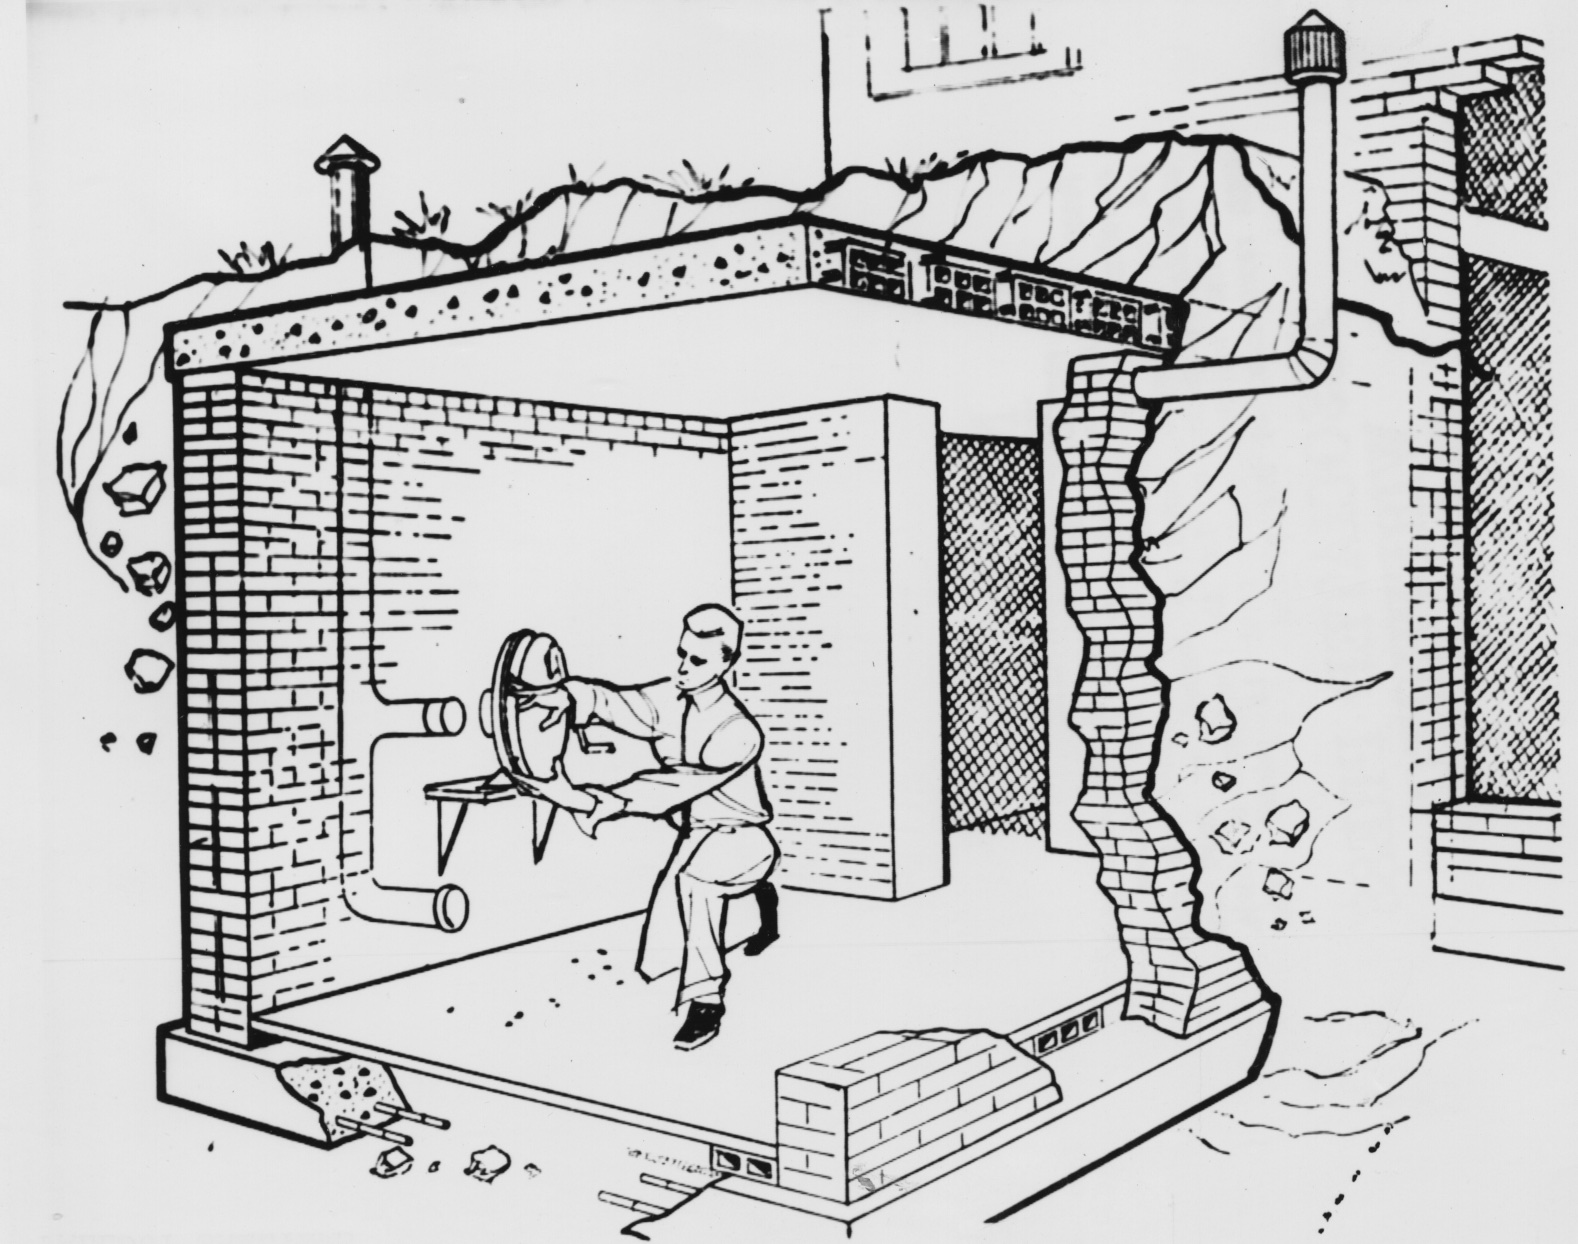 Pittsburgh's fallout shelters